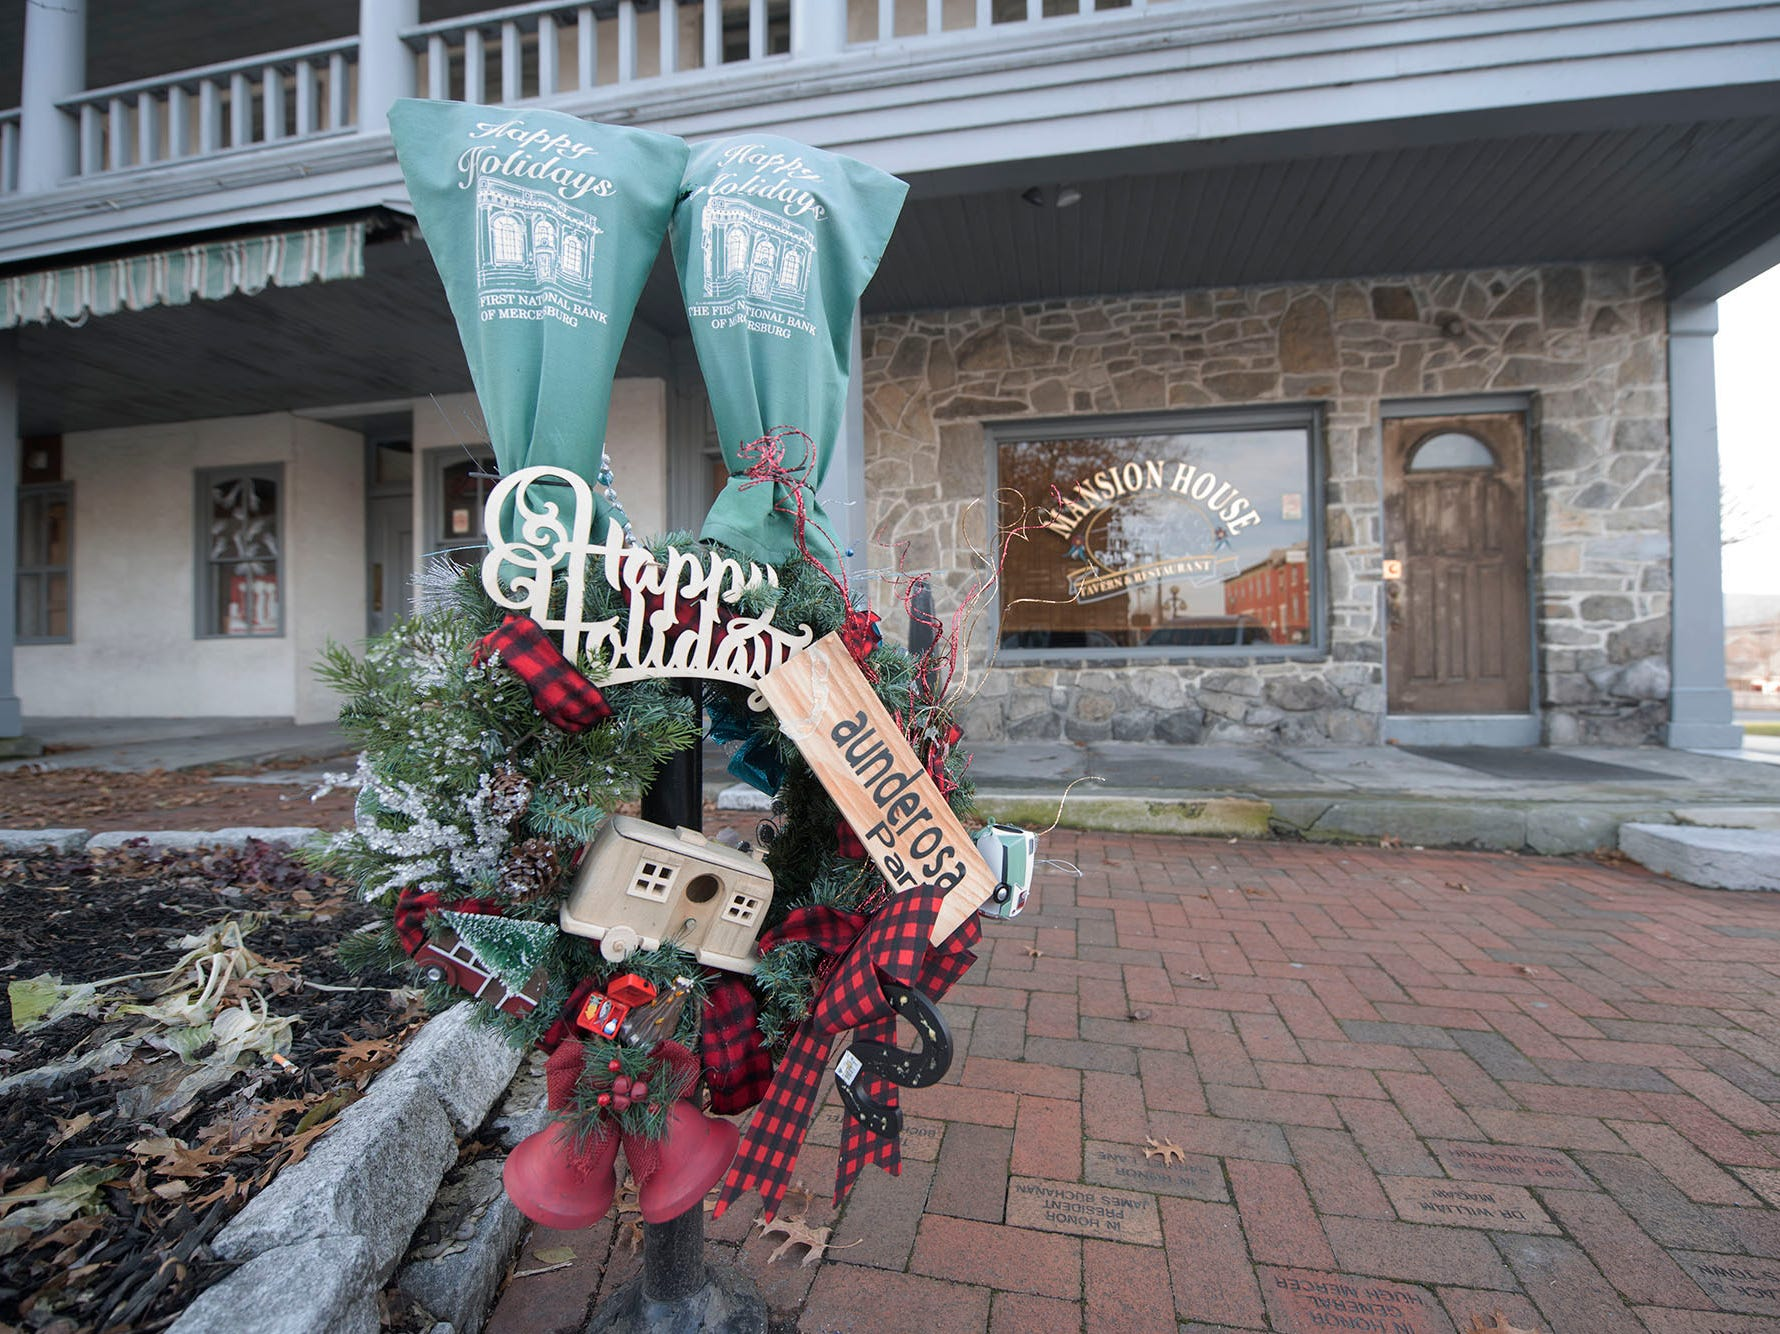 Parking meters in Downtown Mercersburg are decorated with Christmas wreaths and holiday messages.